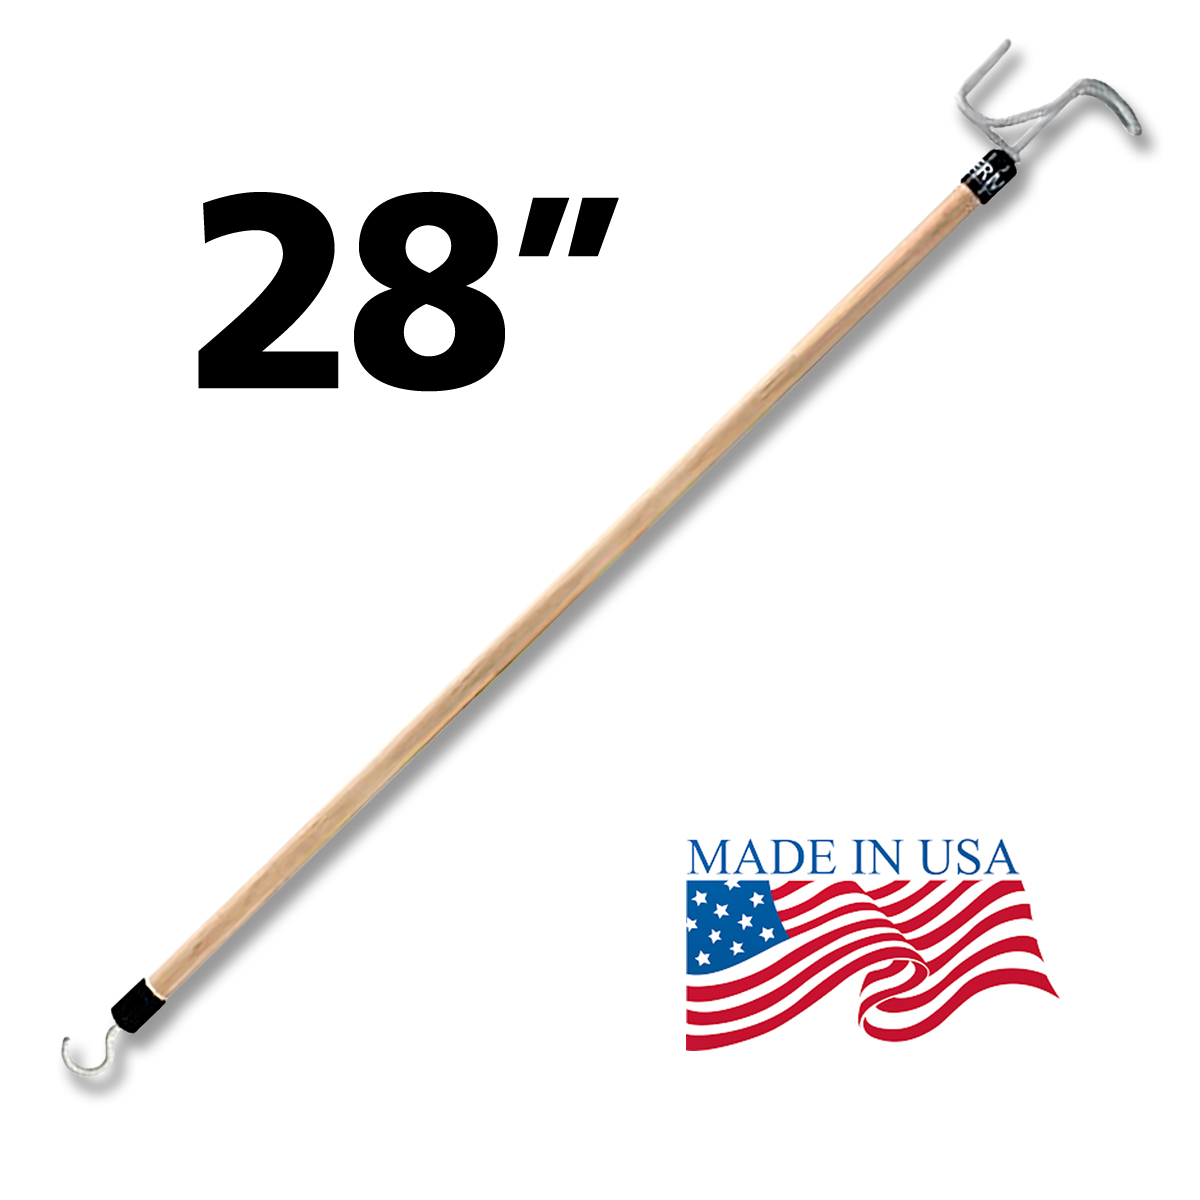 RMS Dressing Stick, Dressing Aid Tool with Zipper Puller and Sock or Stocking Remover, Made in USA, Limited Lifetime Warranty